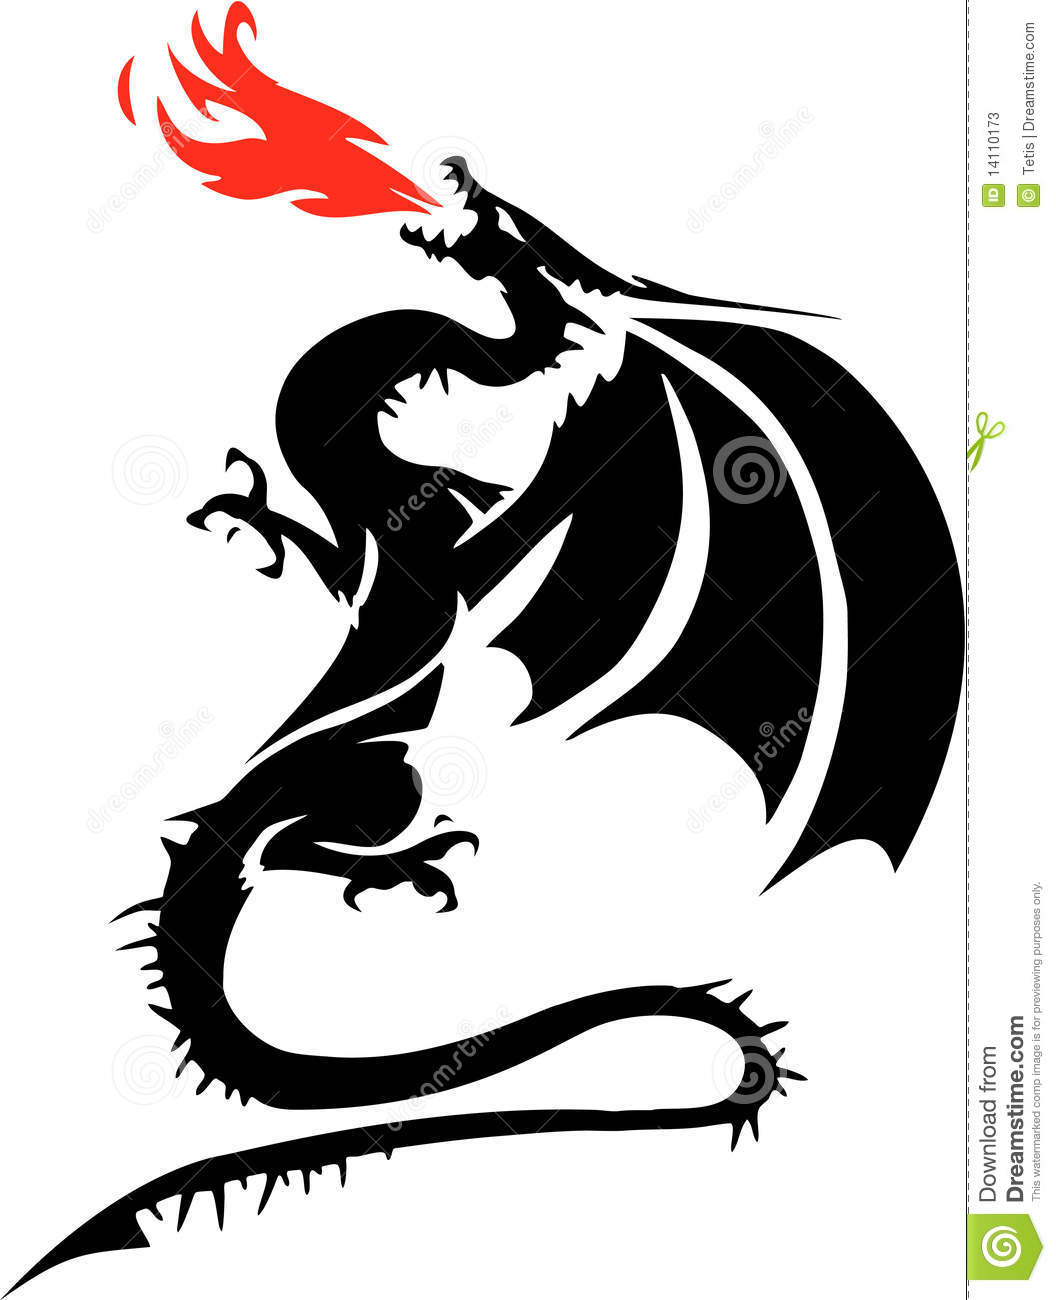 Black and white drawing of a winged dragon breathing red flames. Angry Black Woman Face